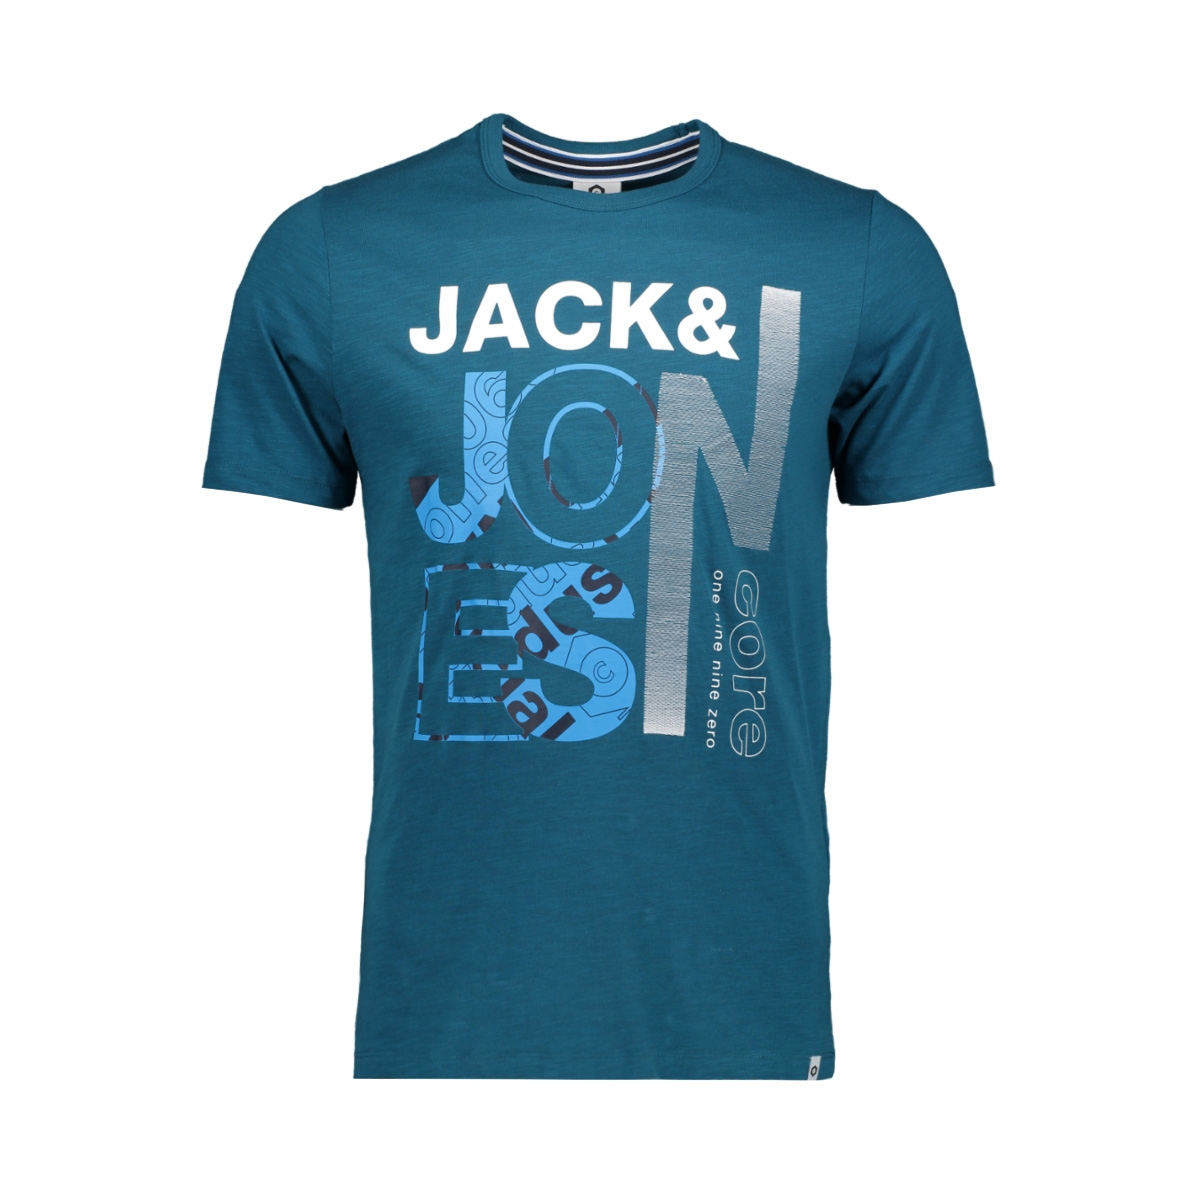 jcotilly tee ss crew neck 12148516 jack & jones t-shirt blue coral/slim